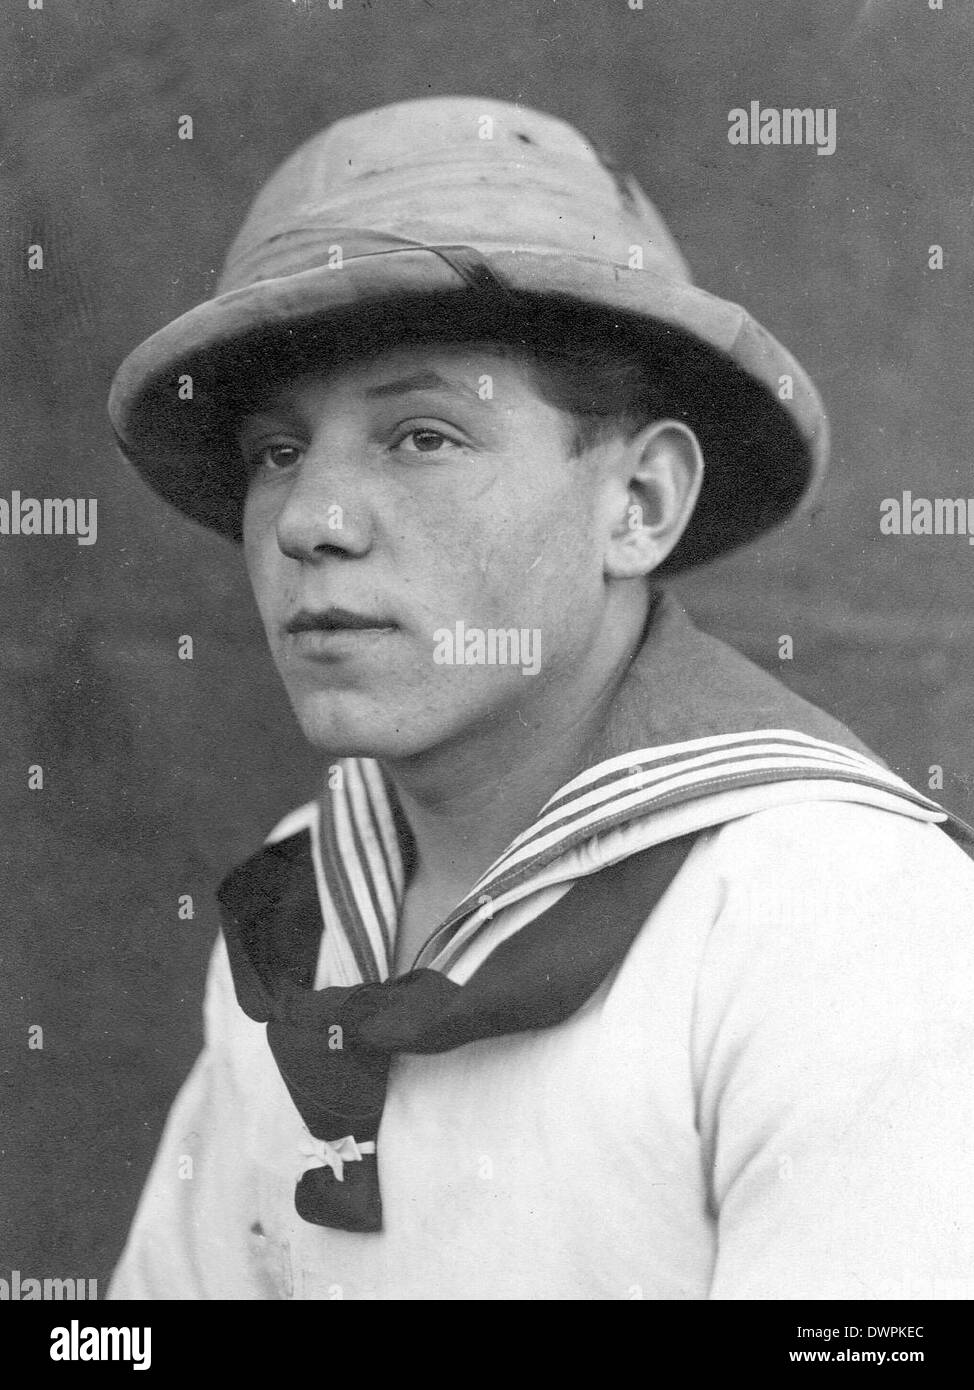 WW2 German sailor in tropical clothing - Stock Image